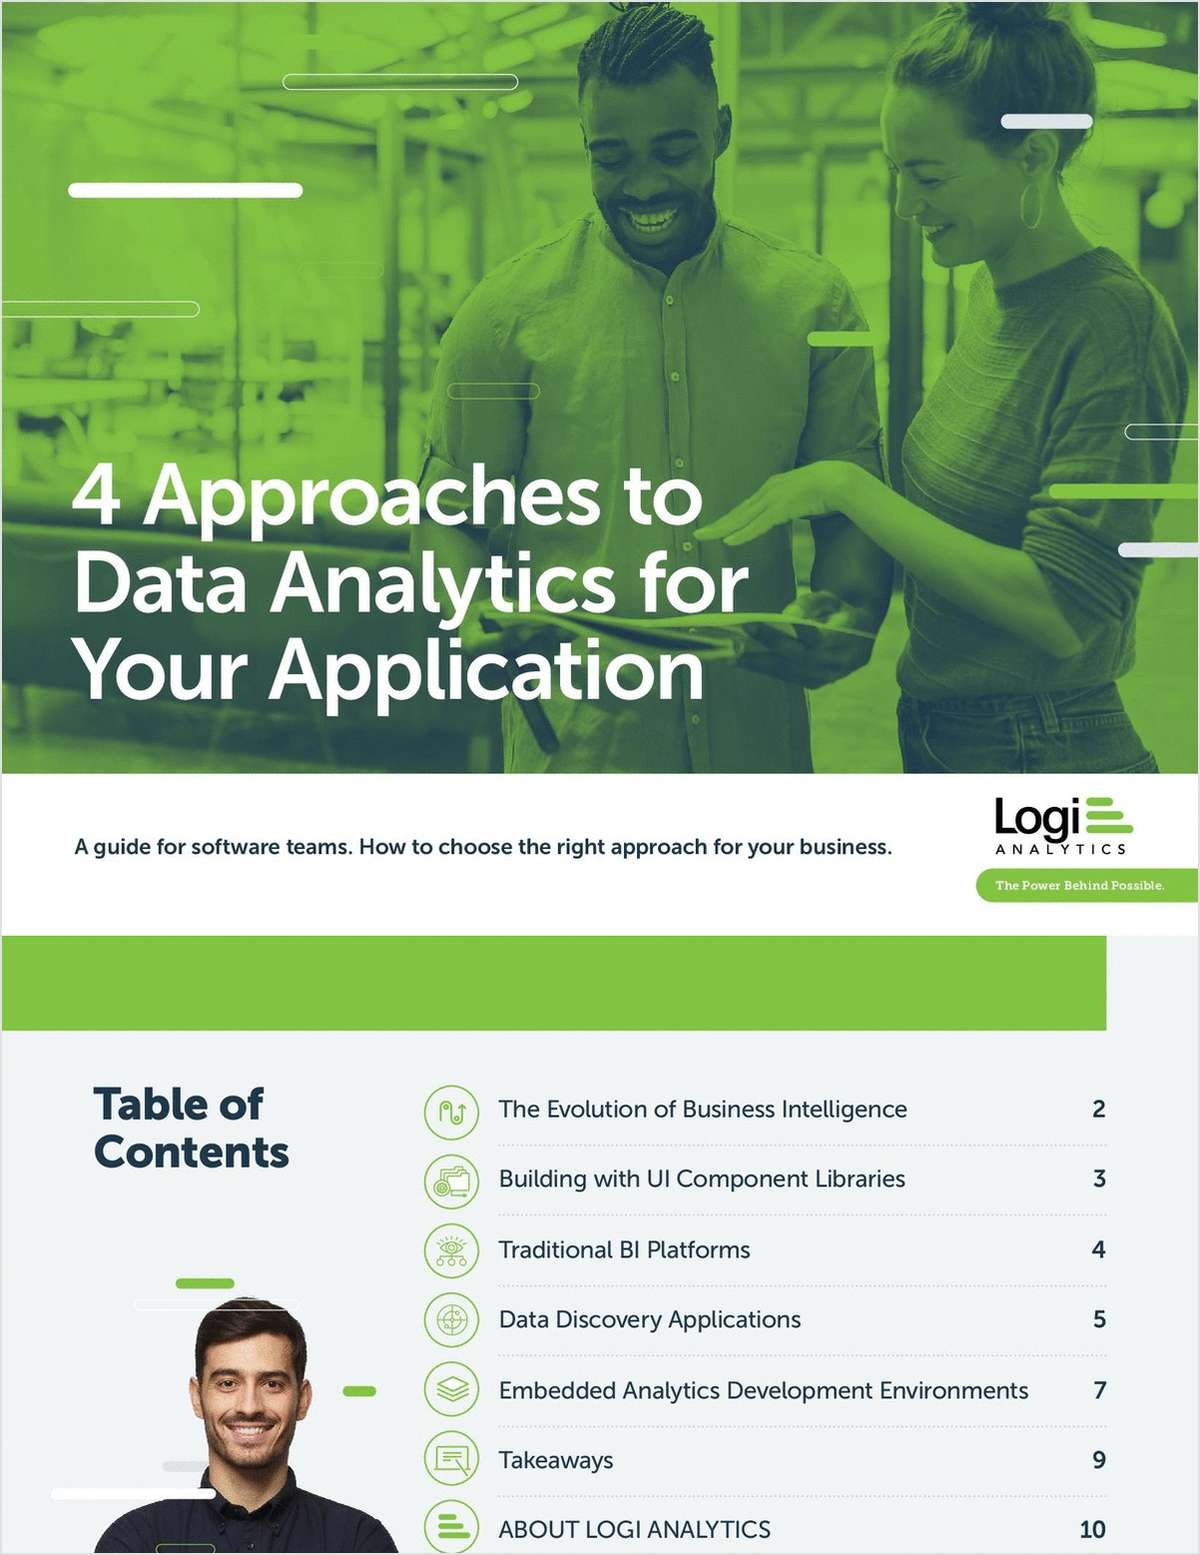 4 Approaches to Data Analytics for Your Application